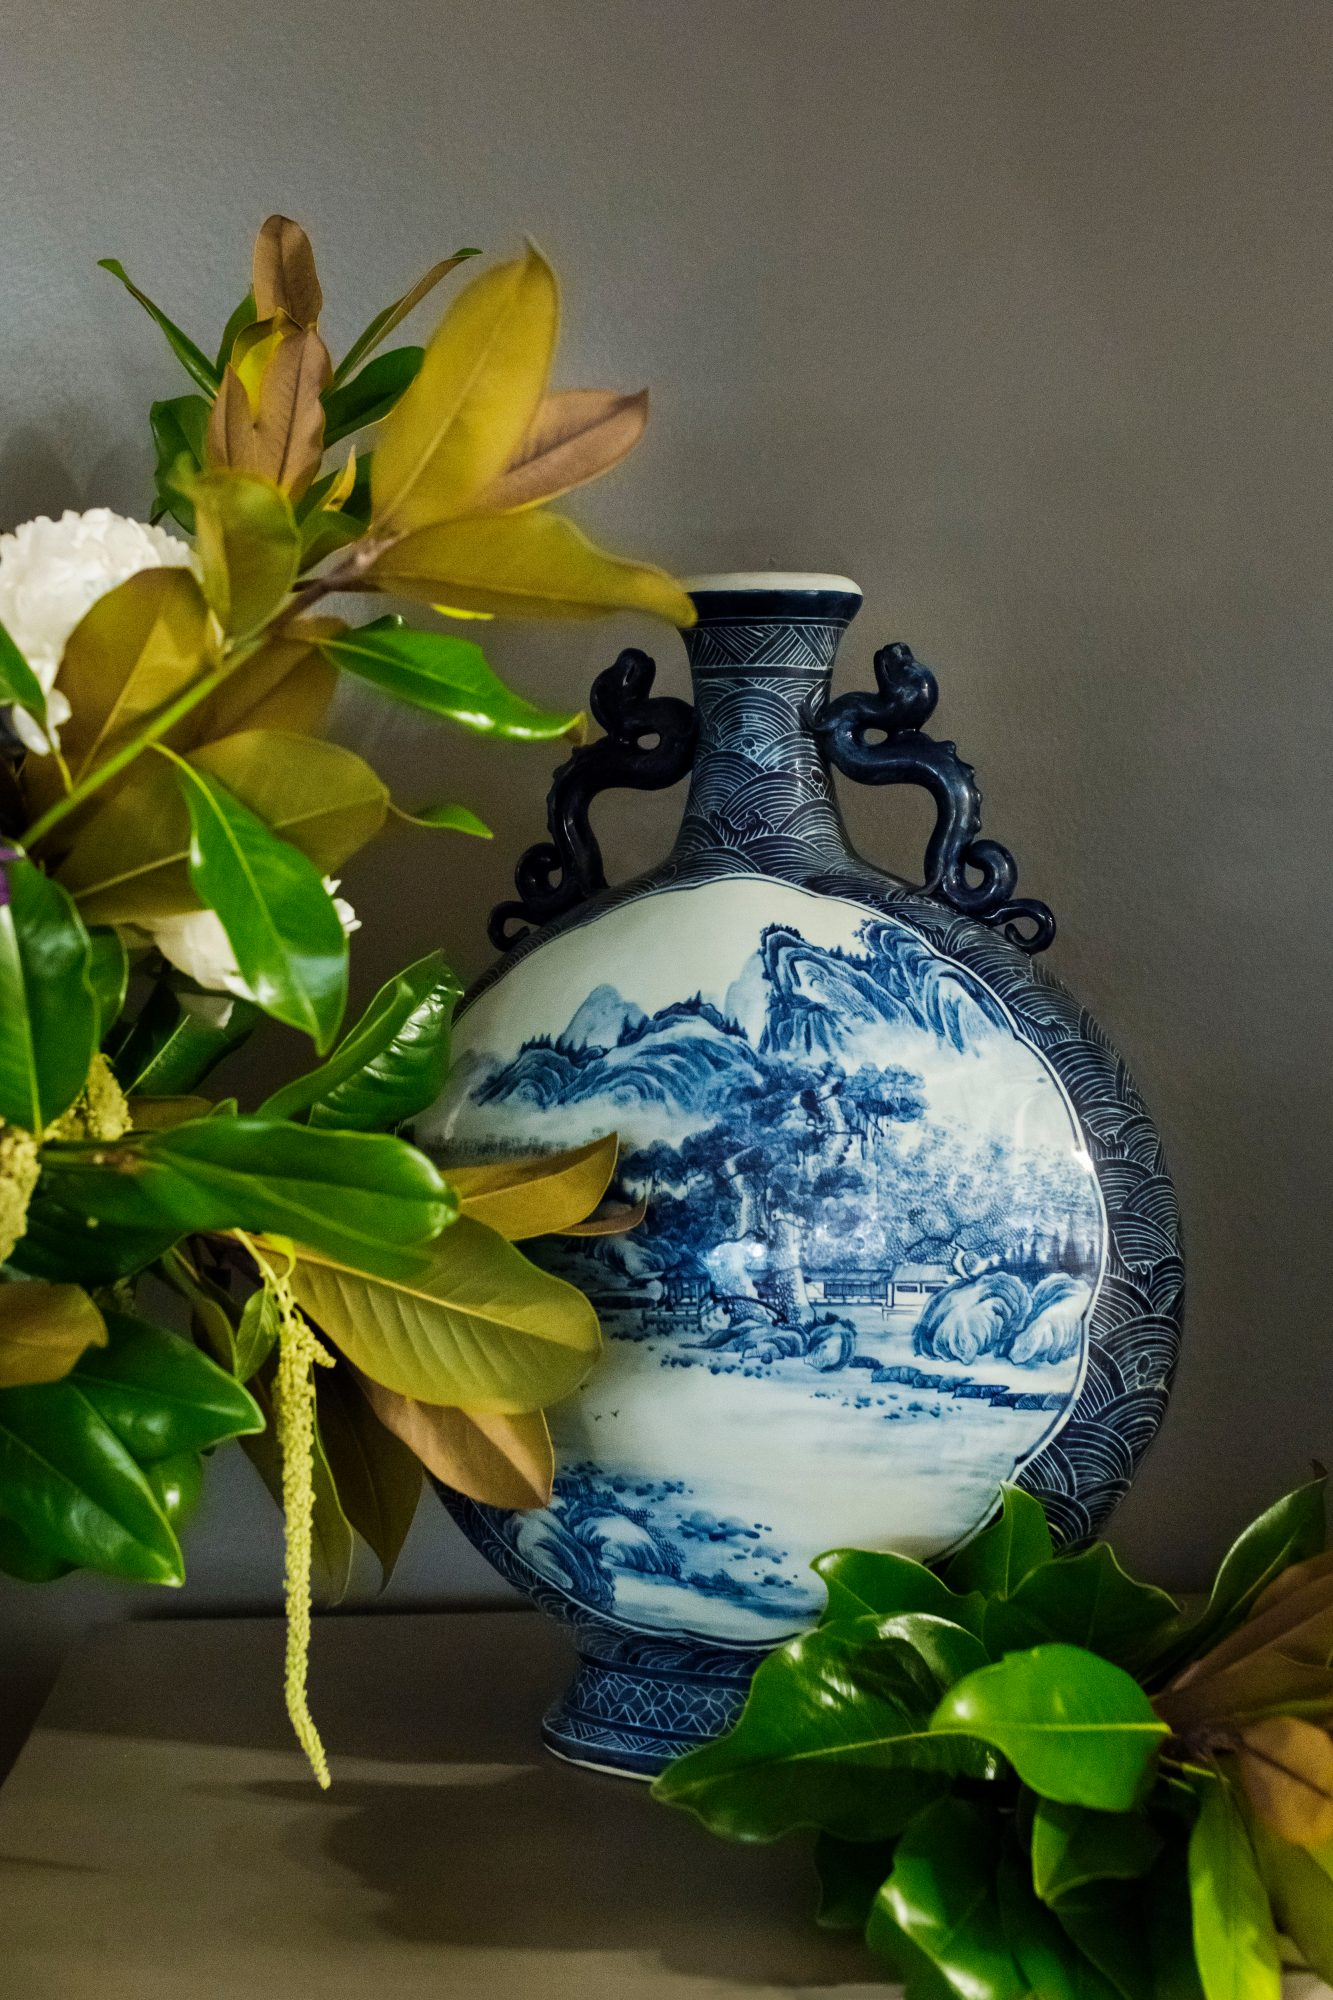 Blue and White Vase with Magnolia